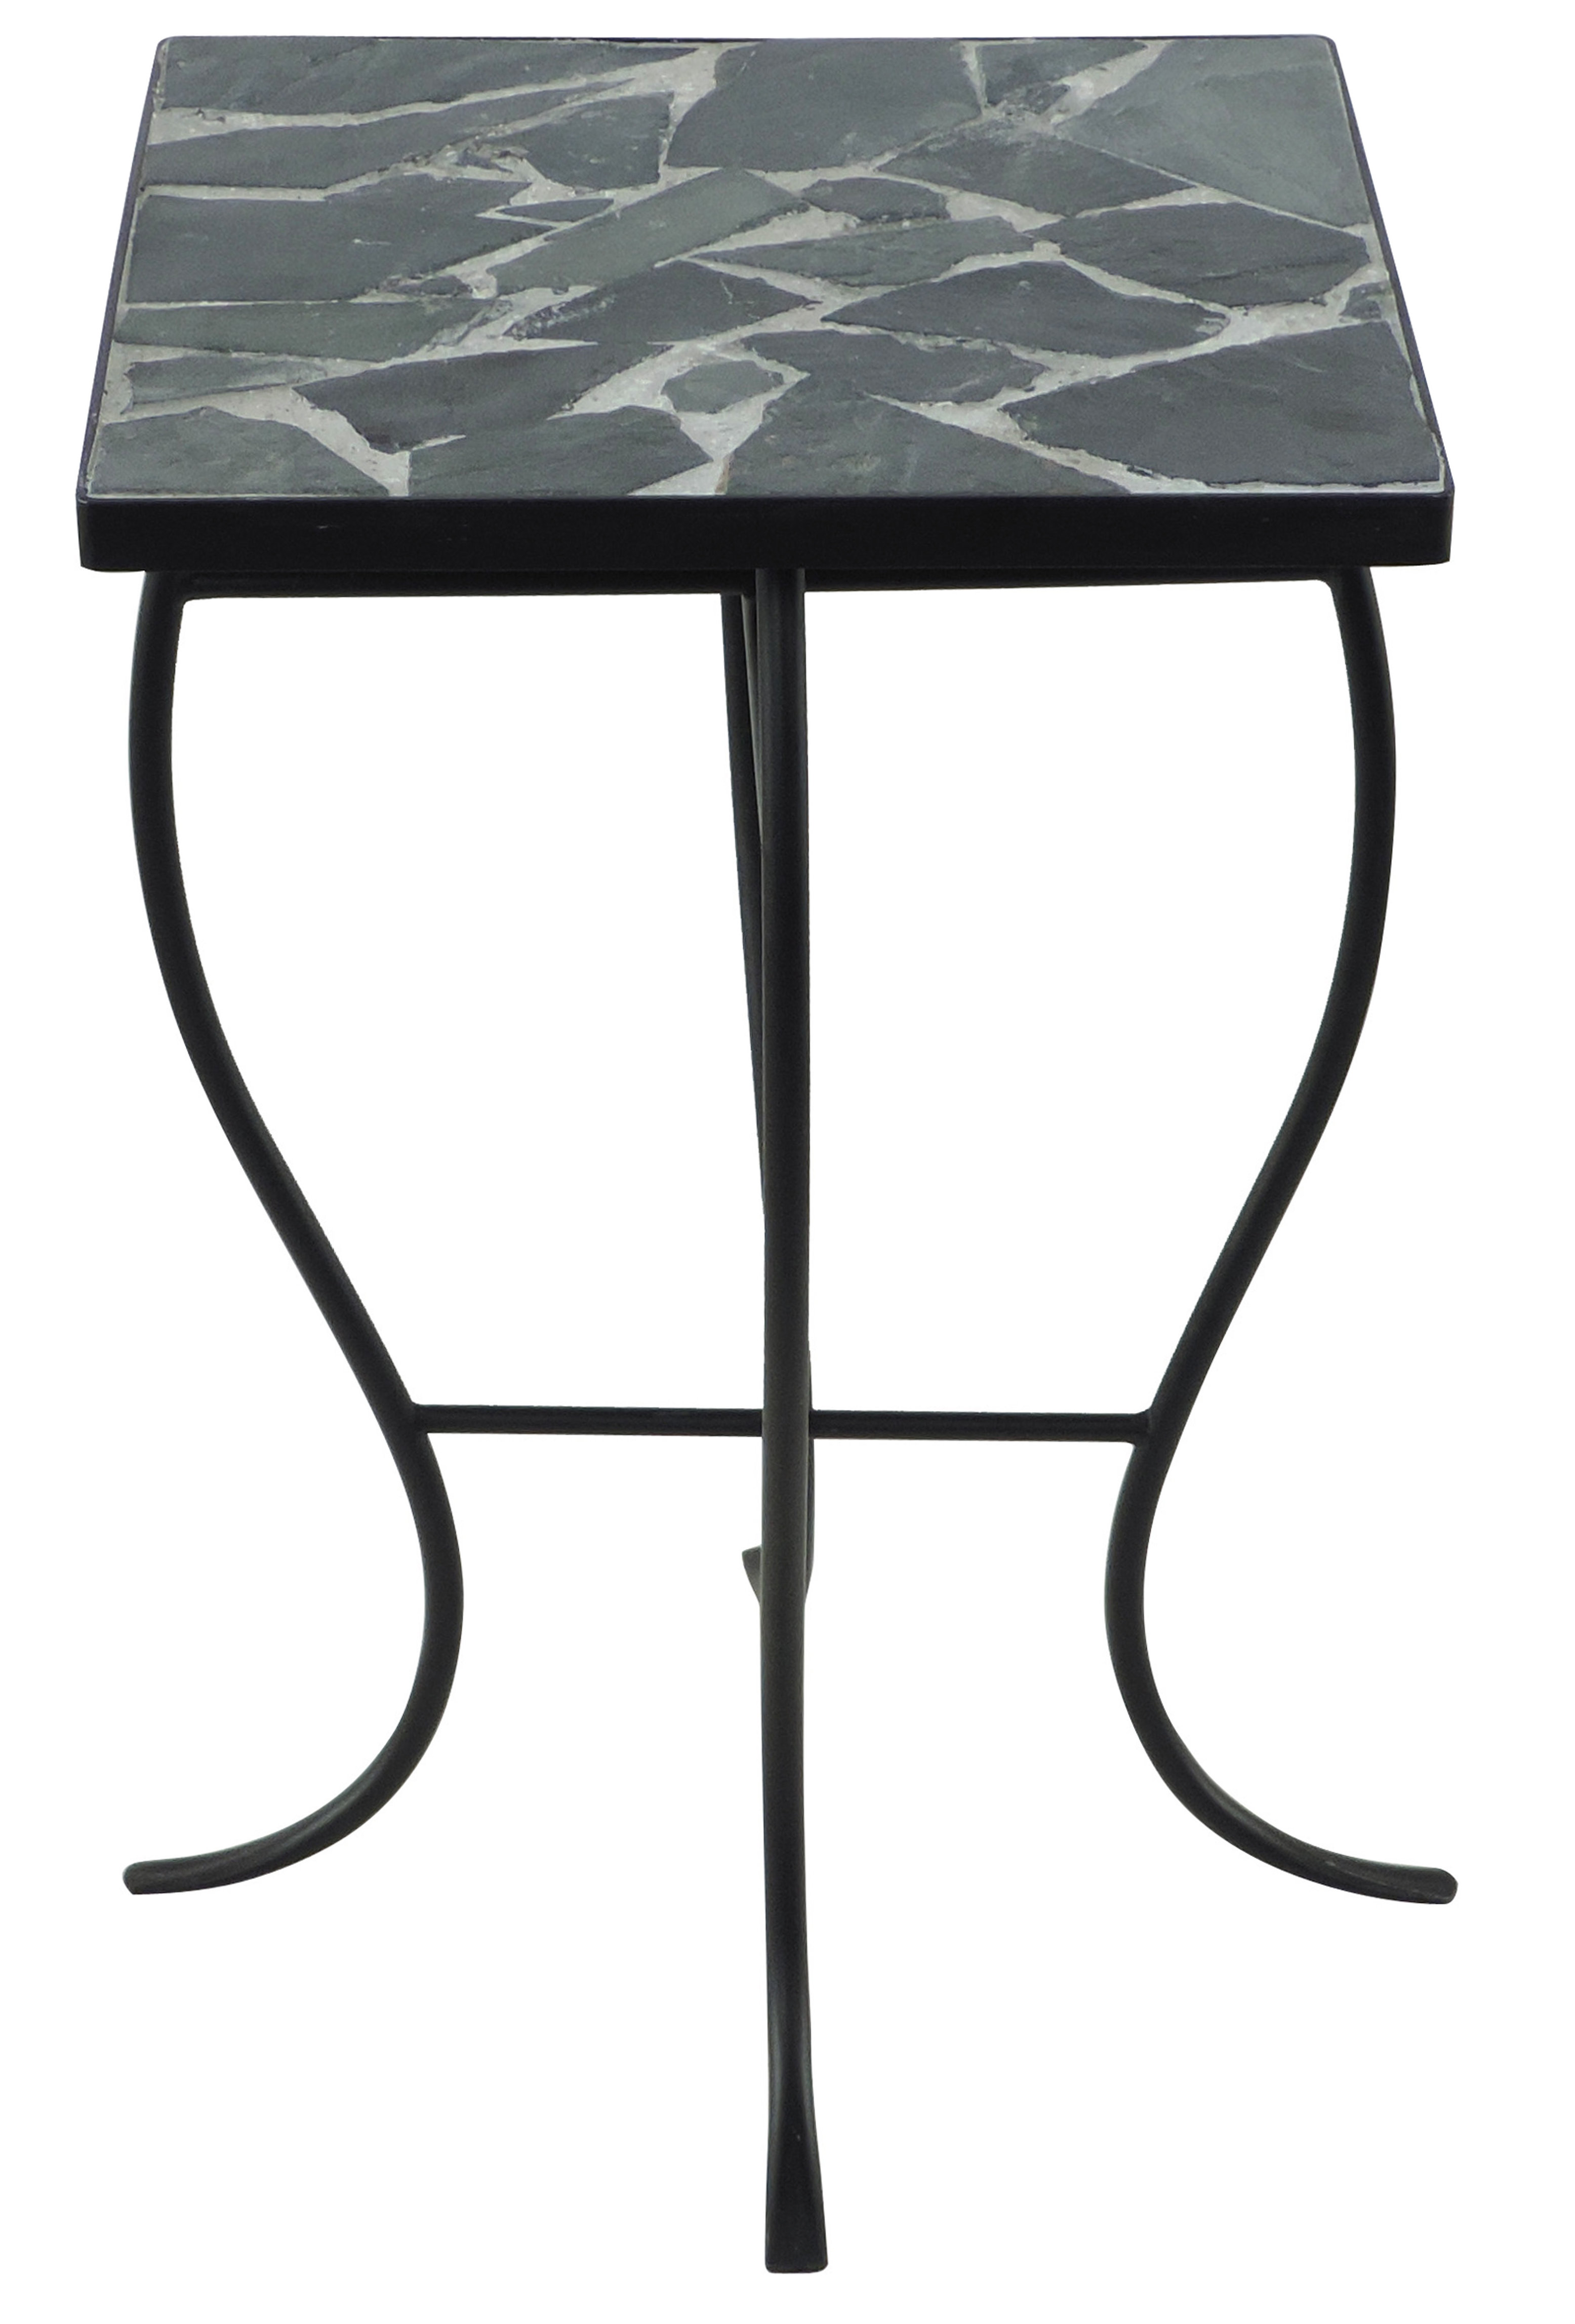 end table with stone top outdoor mosaic accent quickview gray inch console drum parts reclaimed wood coffee steel hairpin legs dale home crystal lamp antique brass purple desk